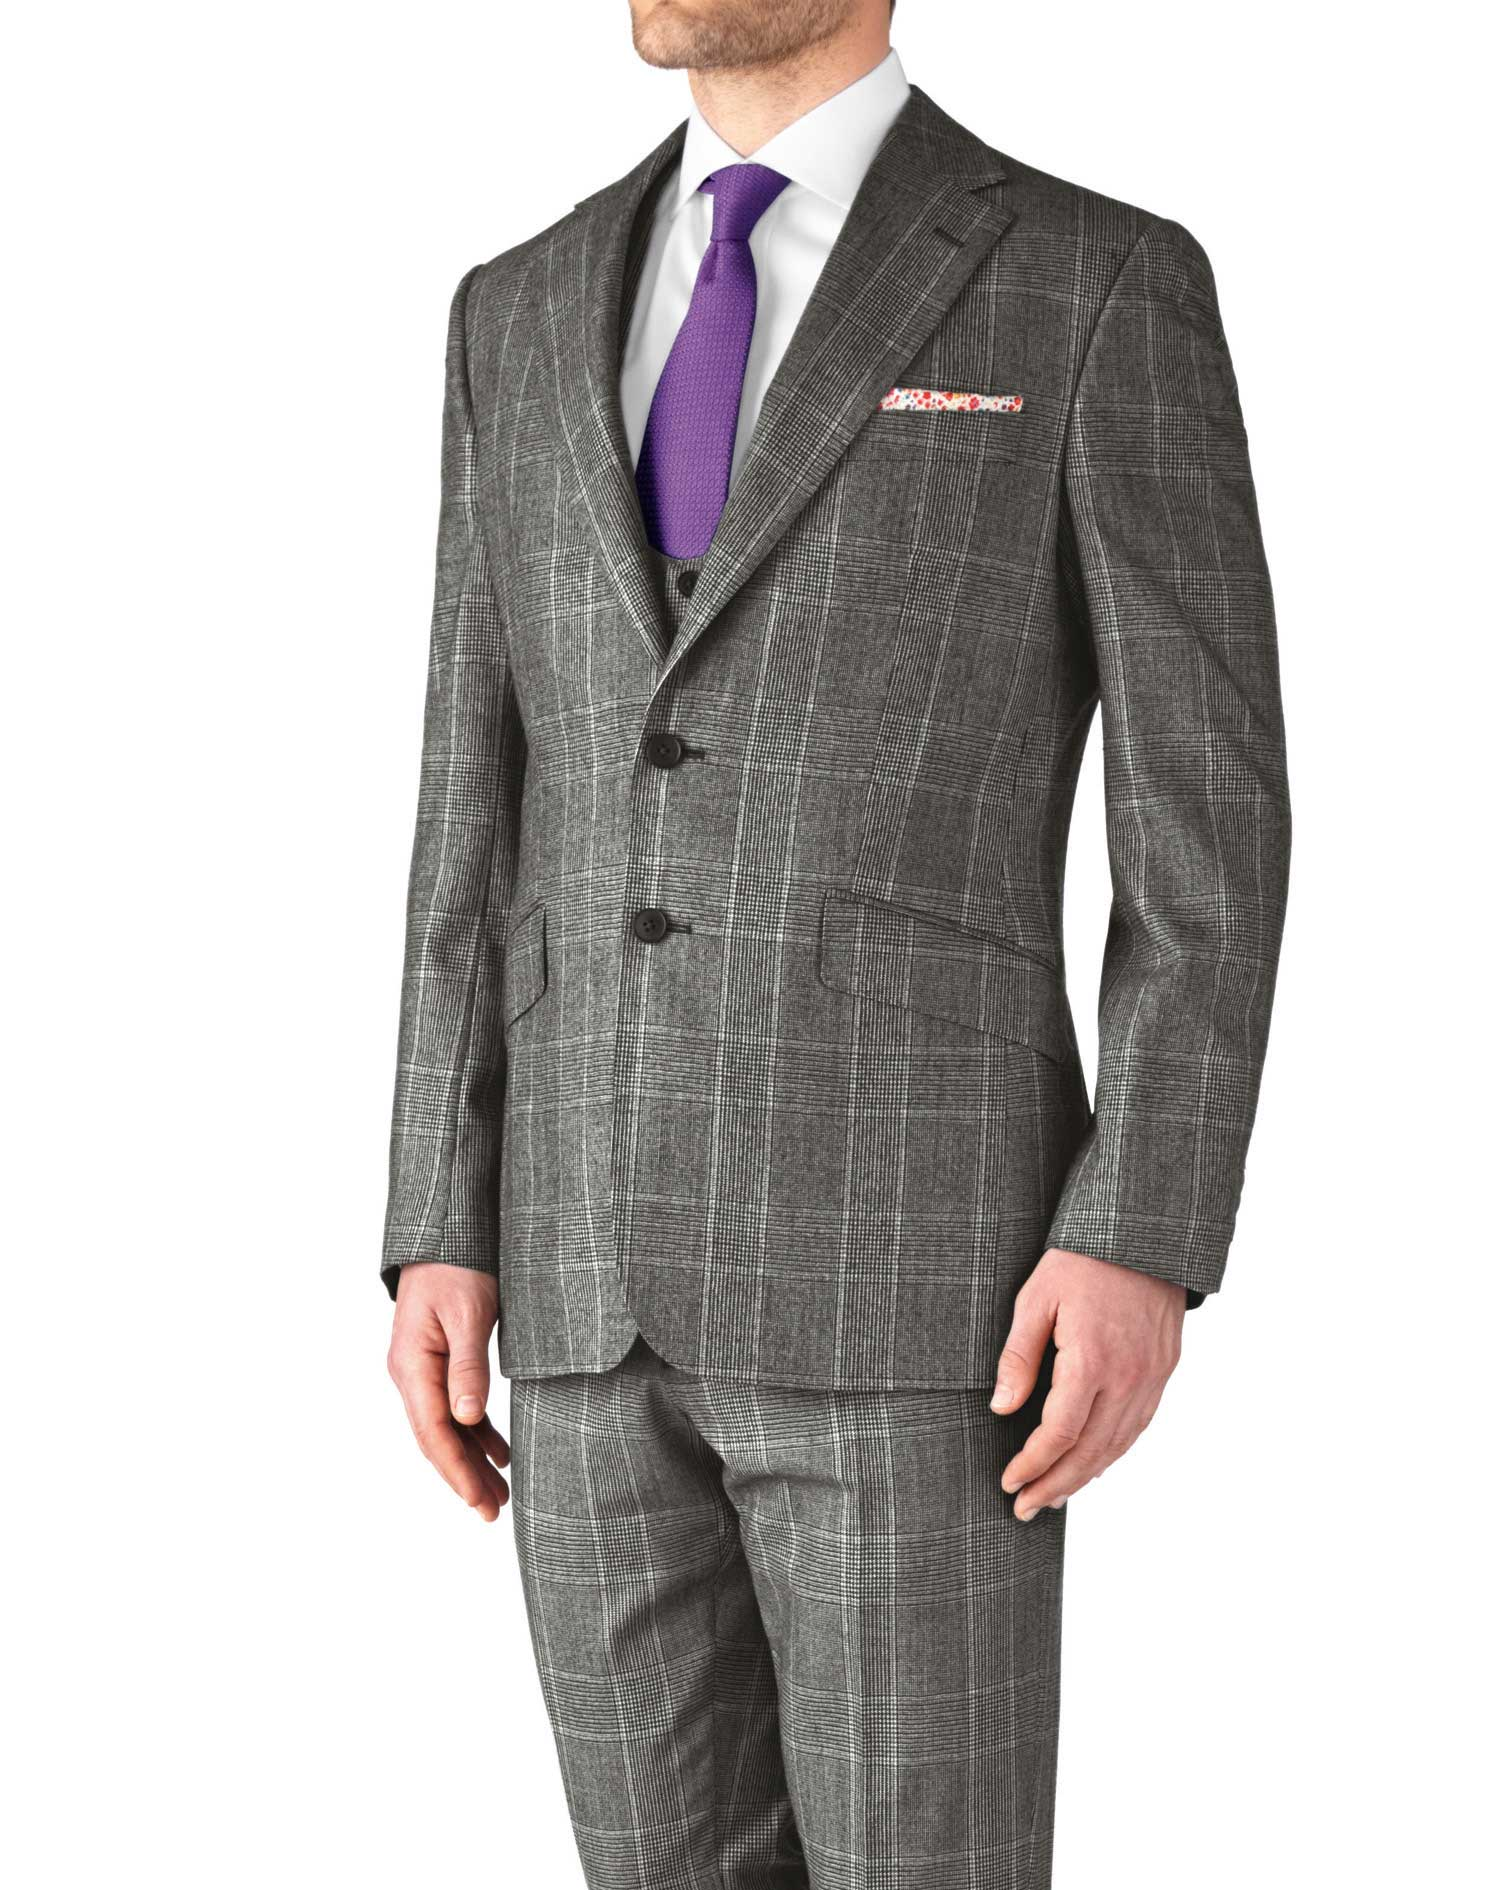 Grey Slim Fit Check Business Suit Wool Jacket Size 38 Long by Charles Tyrwhitt